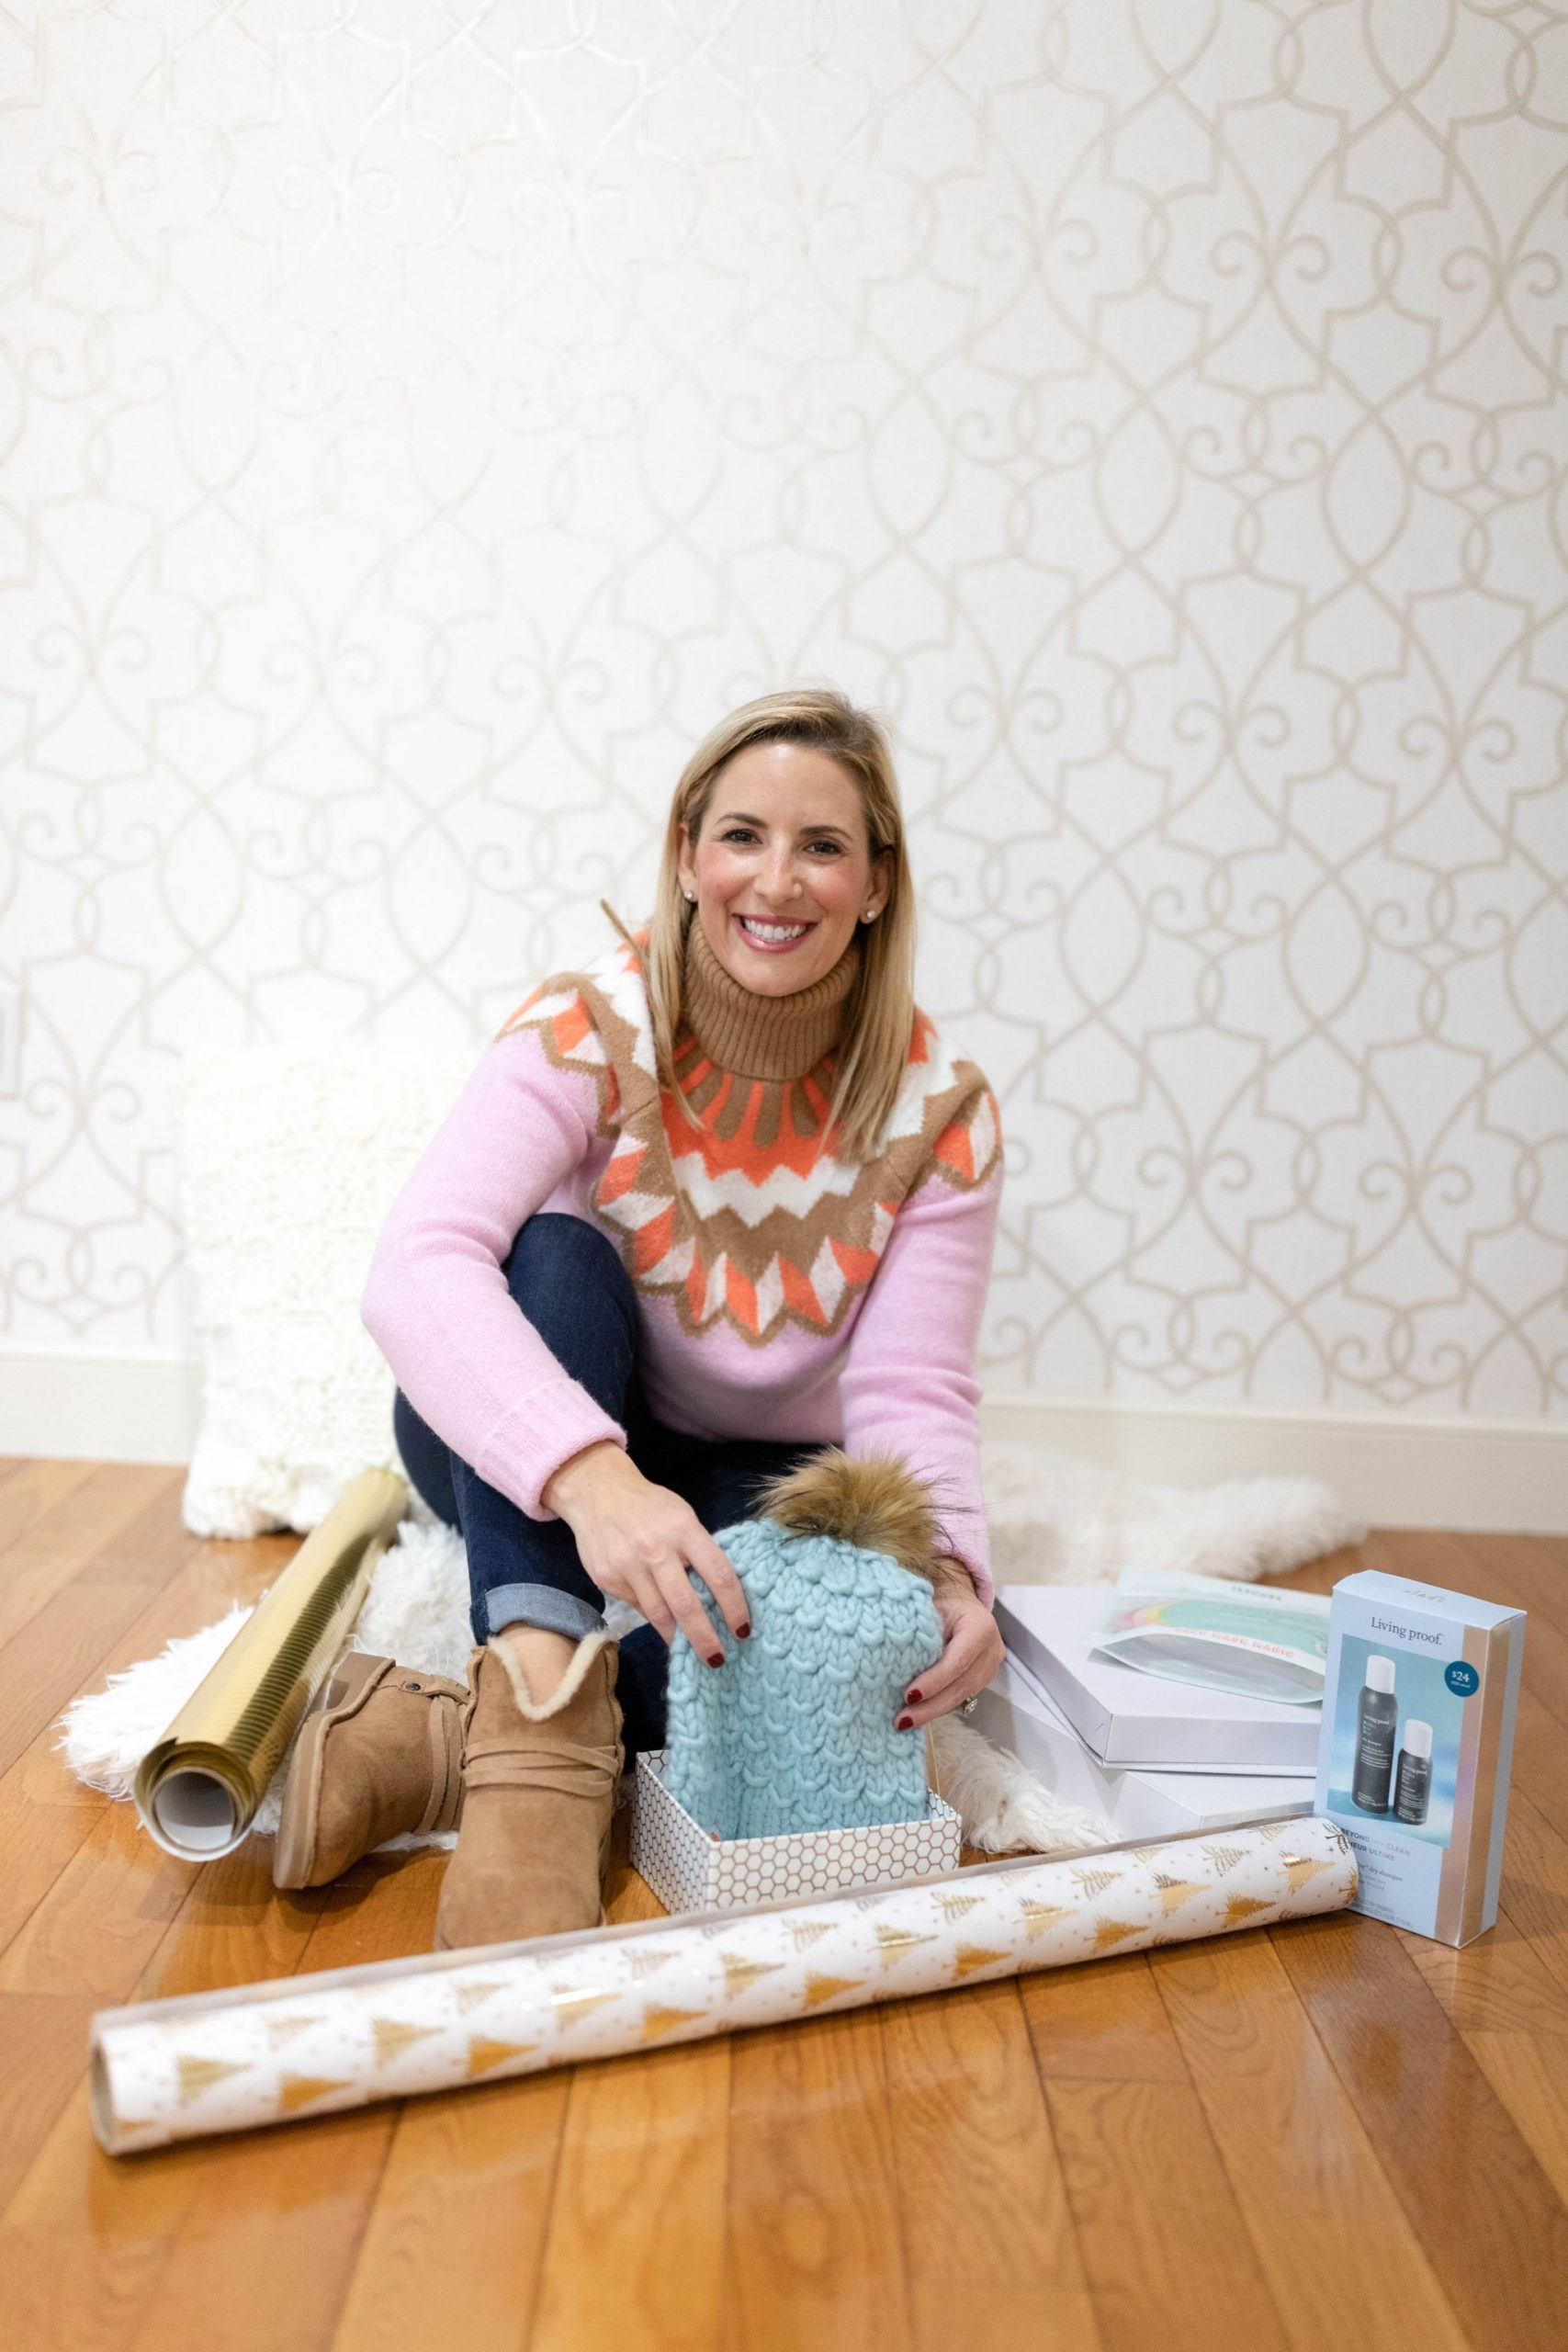 Shopping Small: Small Business Holiday Gift Ideas